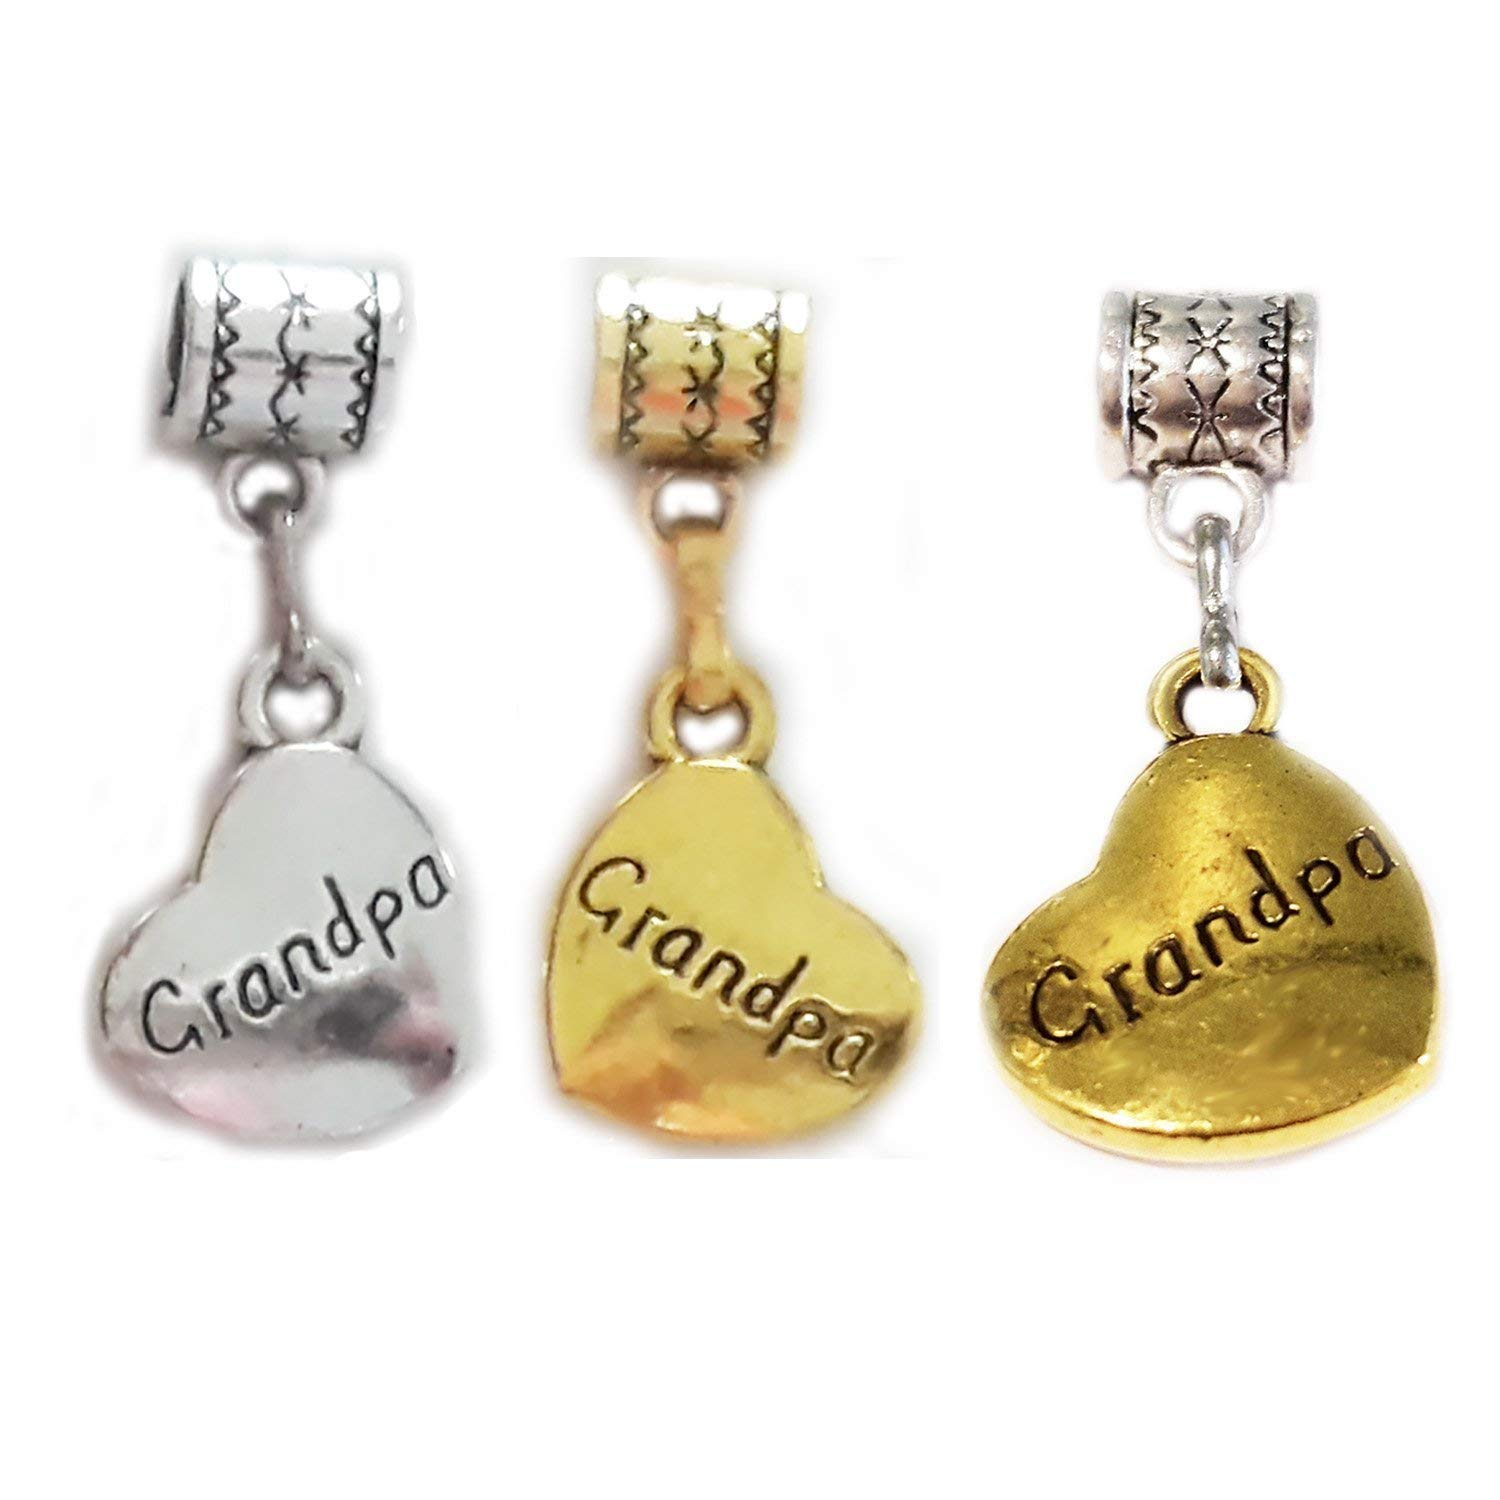 """Grandpa Charm"" - all silver, all gold or 2-tone Silver and Gold Heart-shaped Hanging charm by Mossy Cabin for large hole style charm bracelet, or add to a neck chain, pendant necklace or key chain"